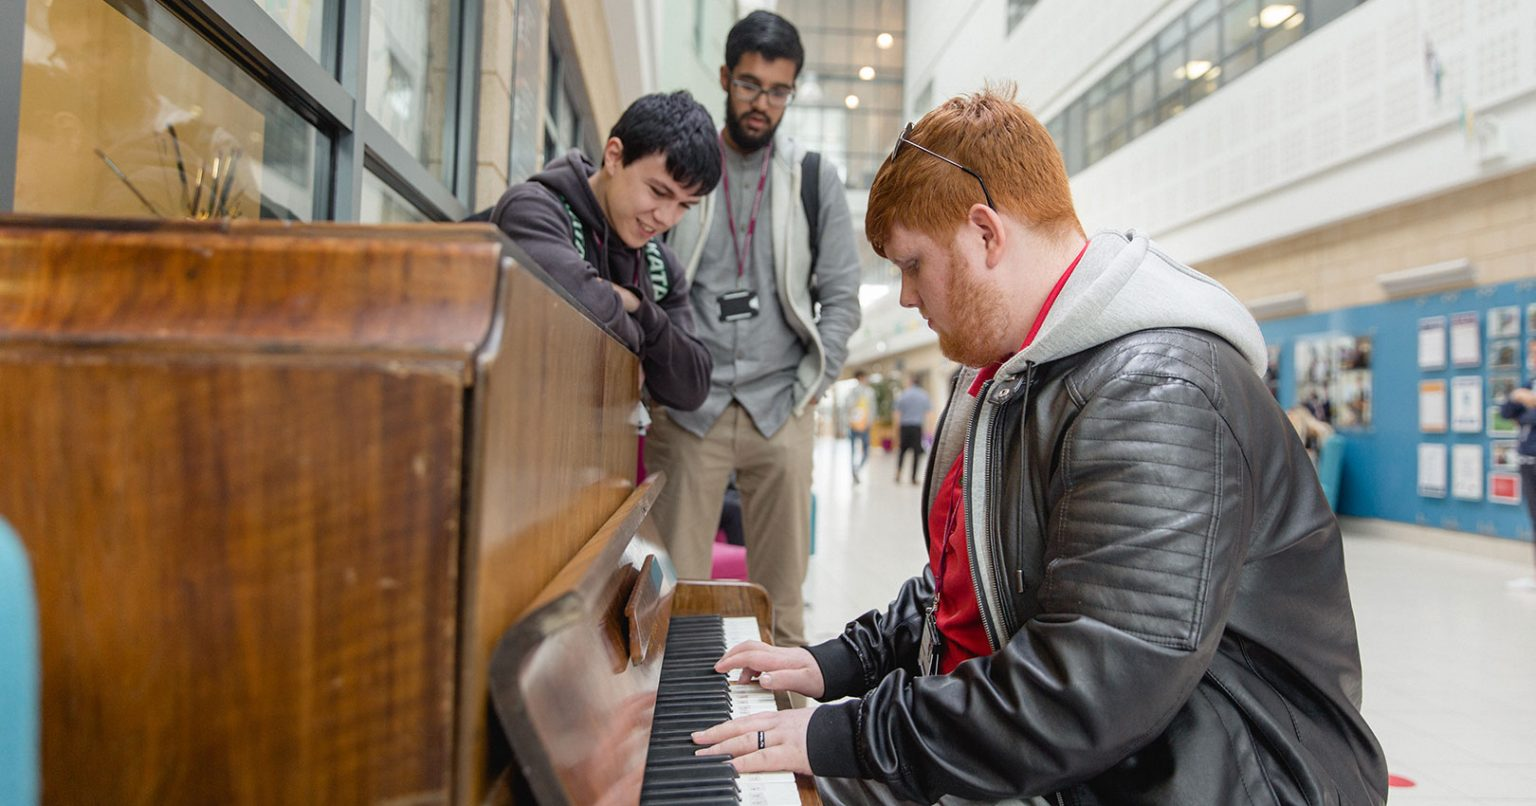 Keighley College student playing the piano at Keighley College with other students watching